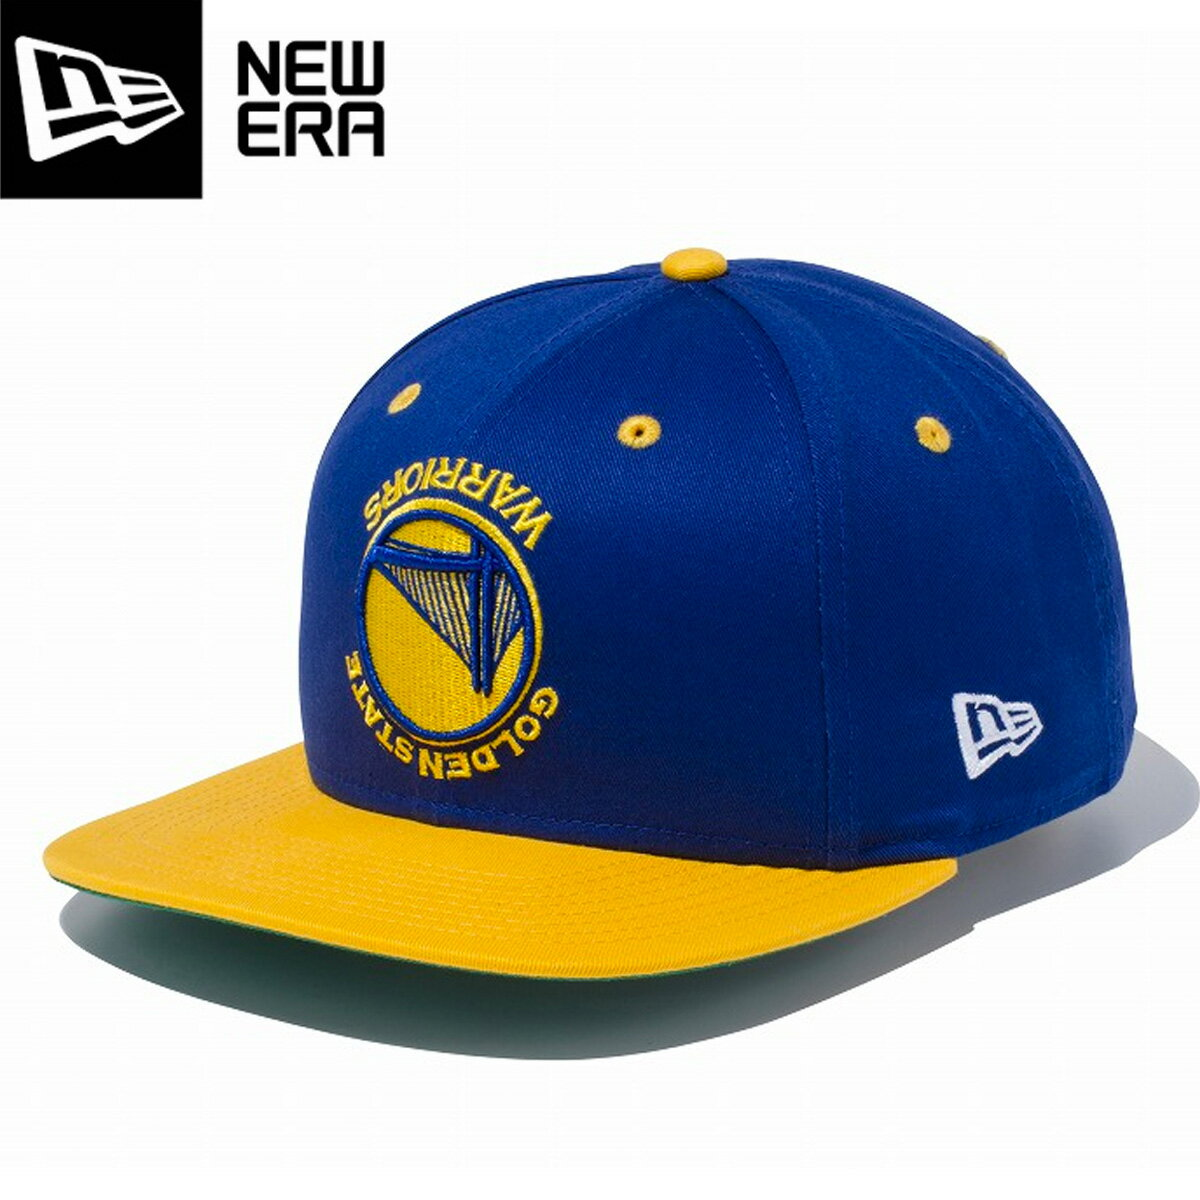 NEW ERA 9FIFTY ORIGINAL FIT UPSIDE DOWN �j���[�G�� 9FIFTY �A�b�v�T�C�h � �E�� �S�[���f���X�e�[�g �E�H���A�[�Y GOLDEN STATE WARRIORS